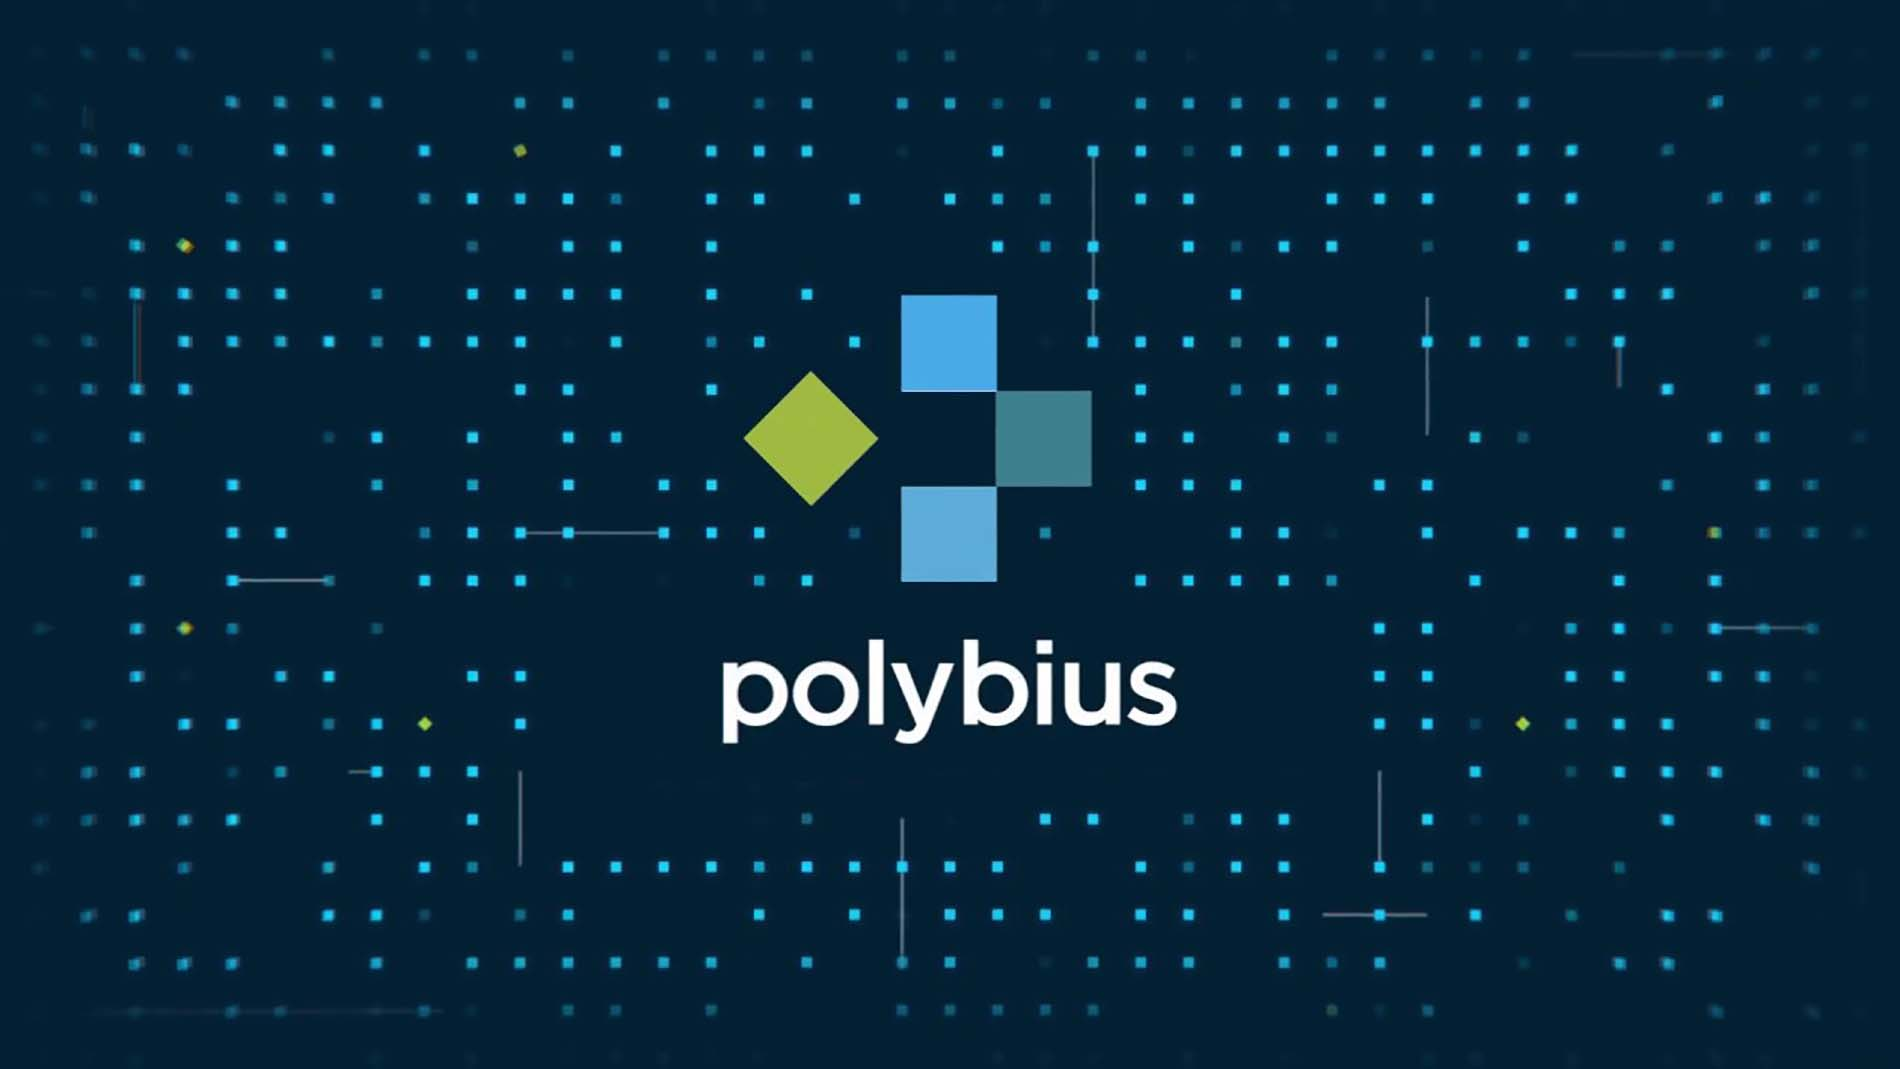 Over 500,000 Early Adopters to Participate in Upcoming Polybius Project ICO